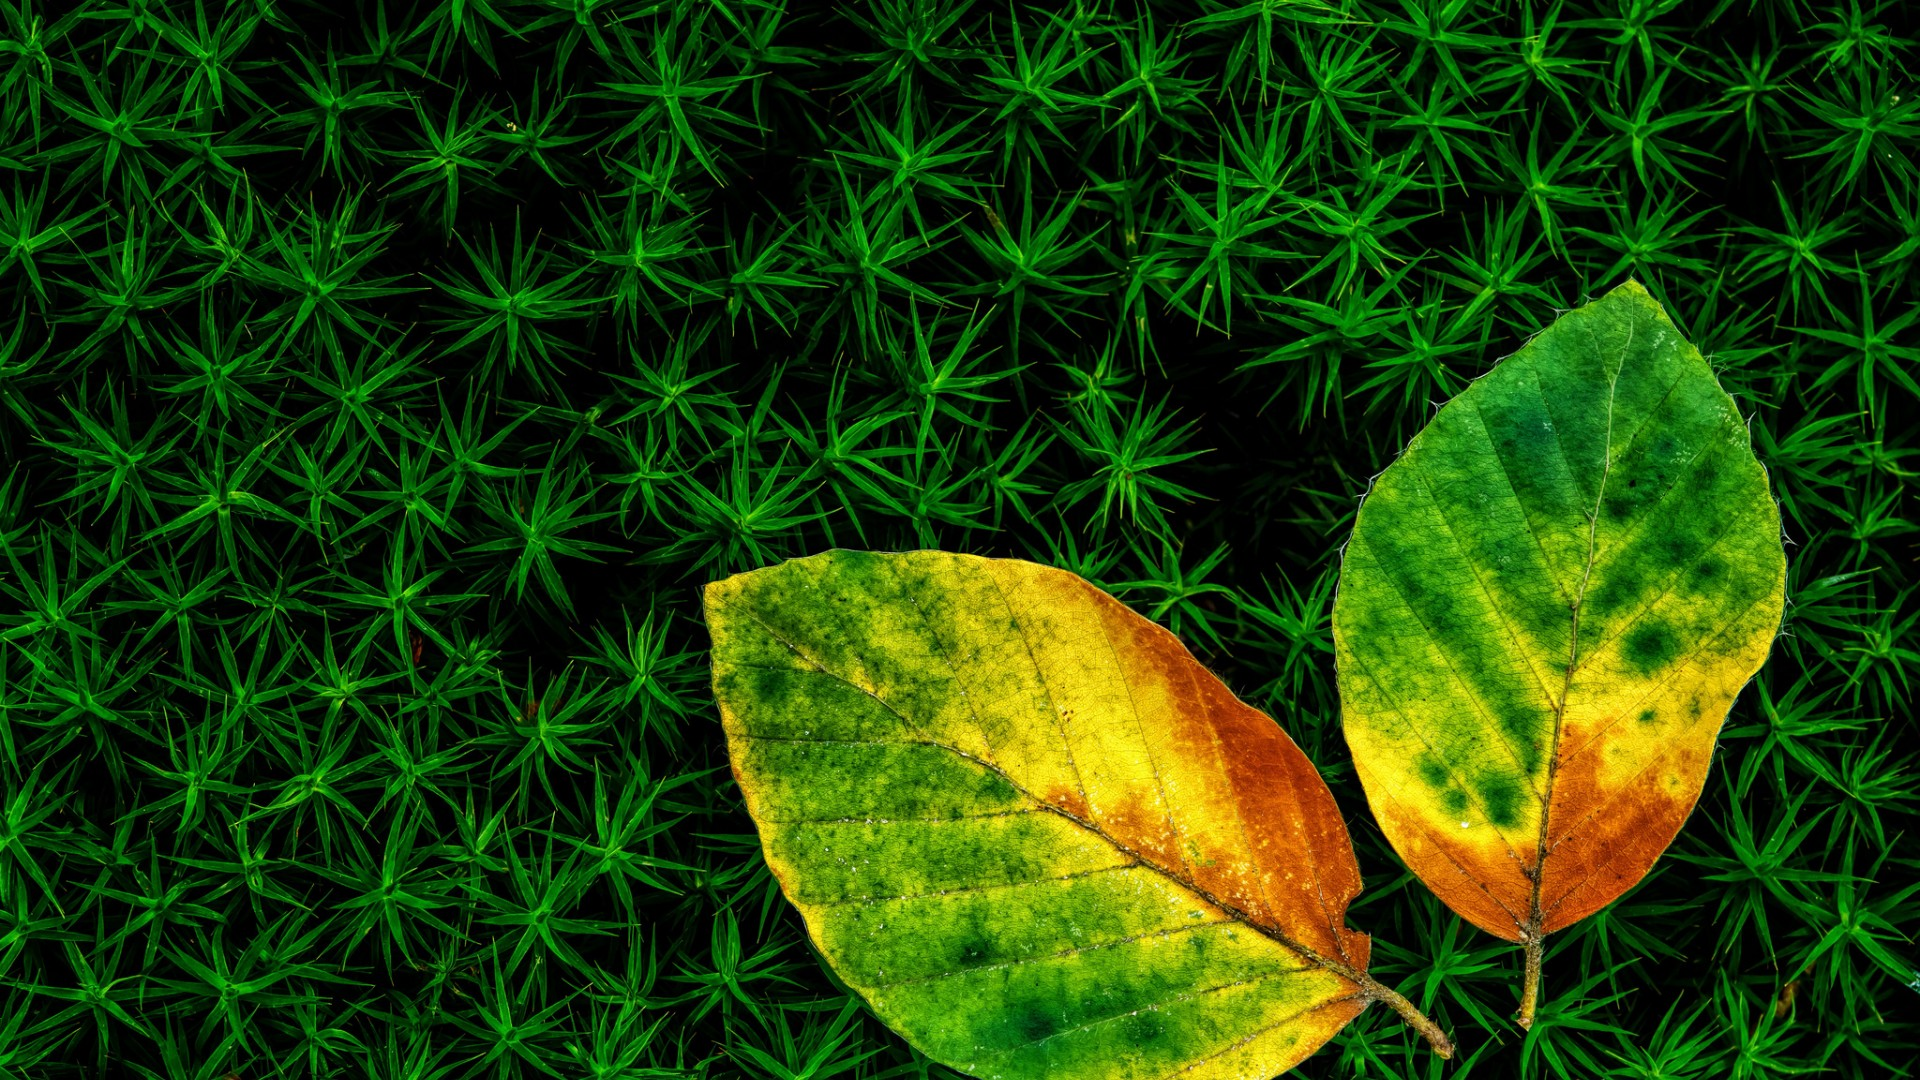 Fallen Leaves on Green Moss – Photography Wallpapers